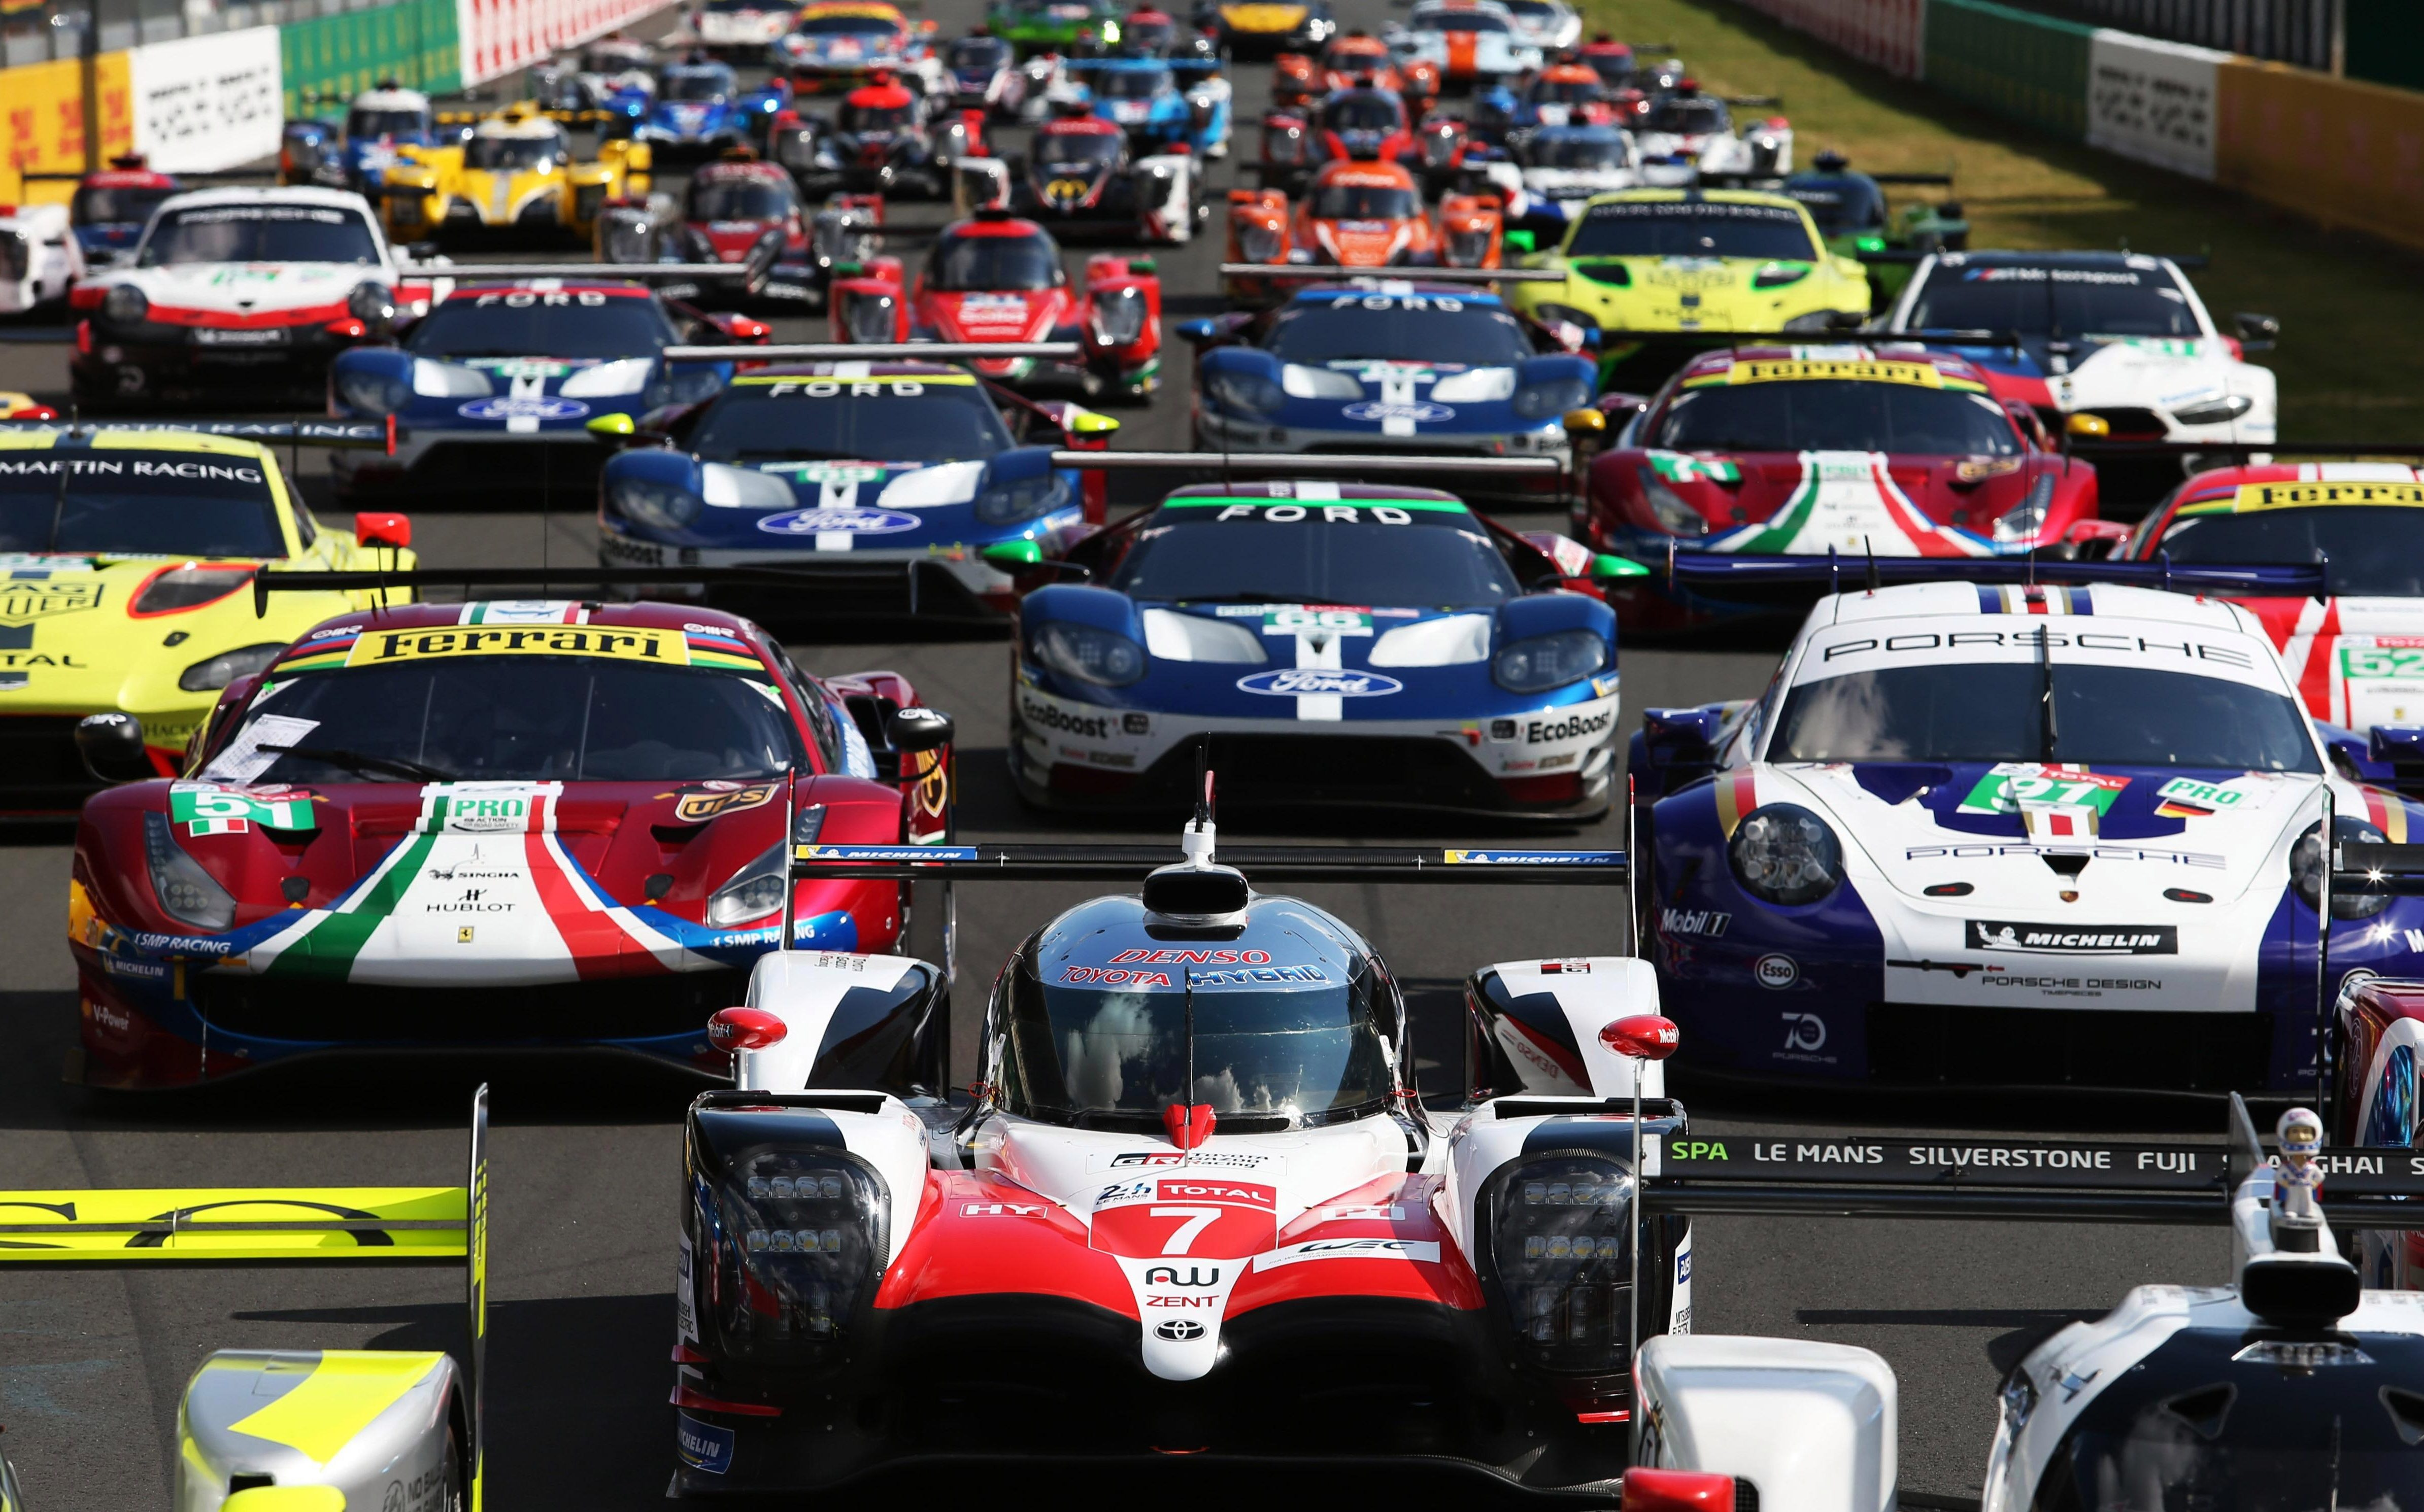 The stage is set for Le Mans 24 hours